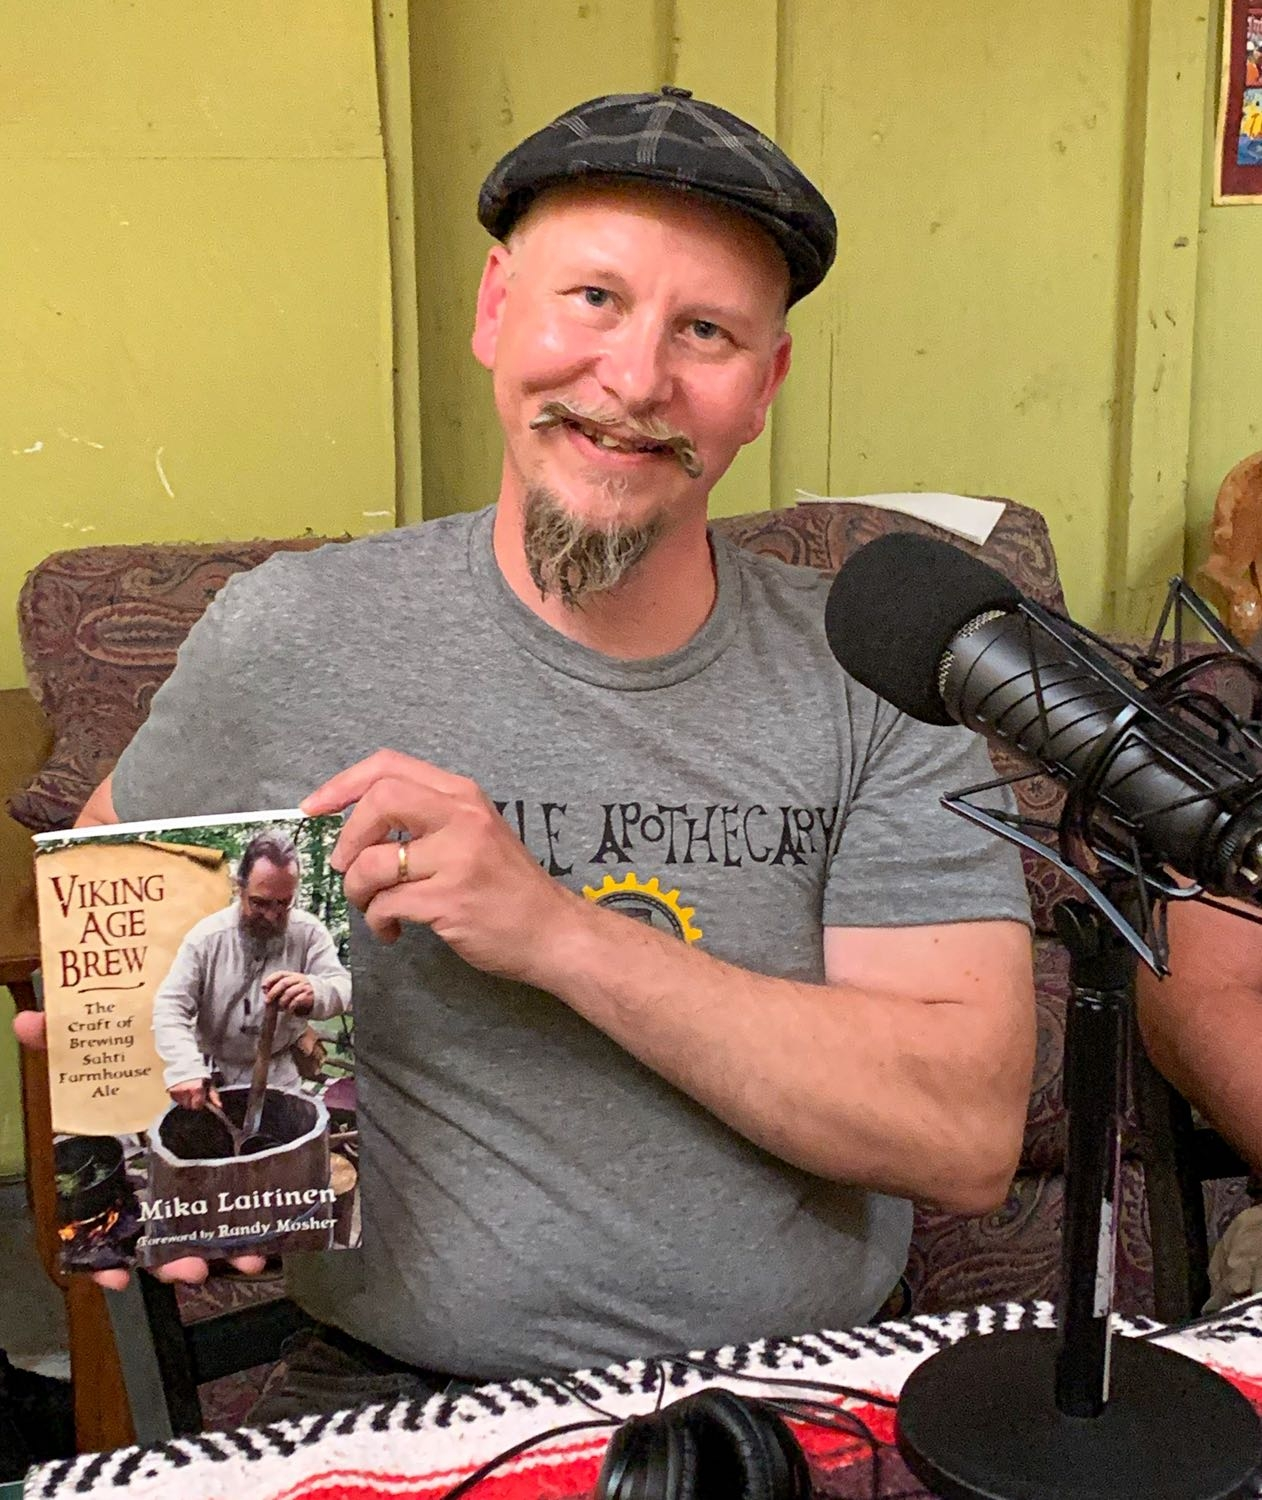 Mika Laitinen Author Viking Age Brew -- The Craft of Brewing Sahti Farmhouse Ale – Portland Beer Podcast Episode 115 by Steven Shomler